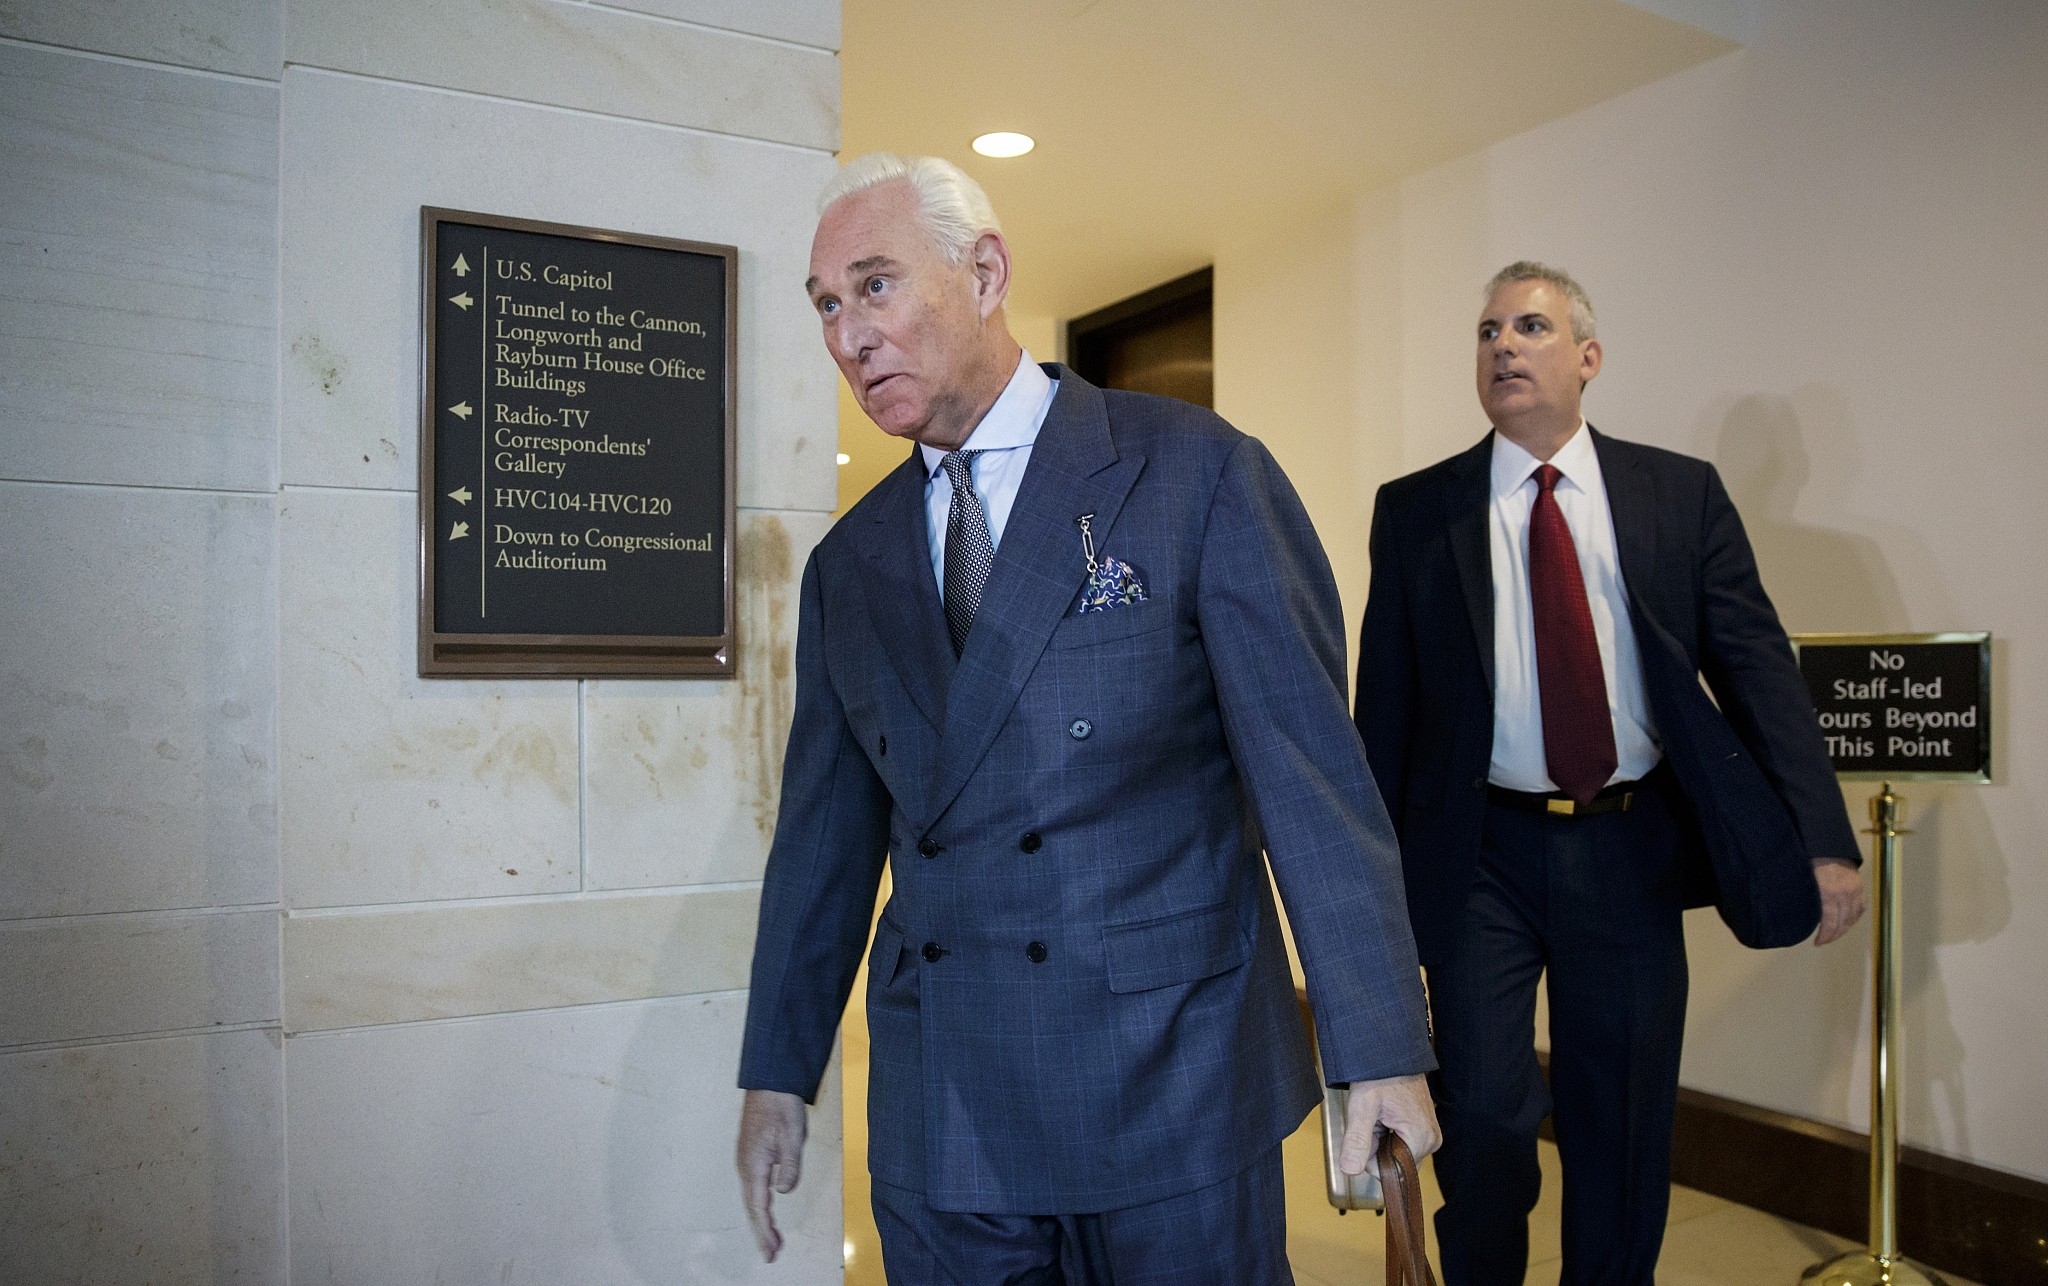 WaPo: Roger Stone met with Russian who wanted $2M for Clinton dirt